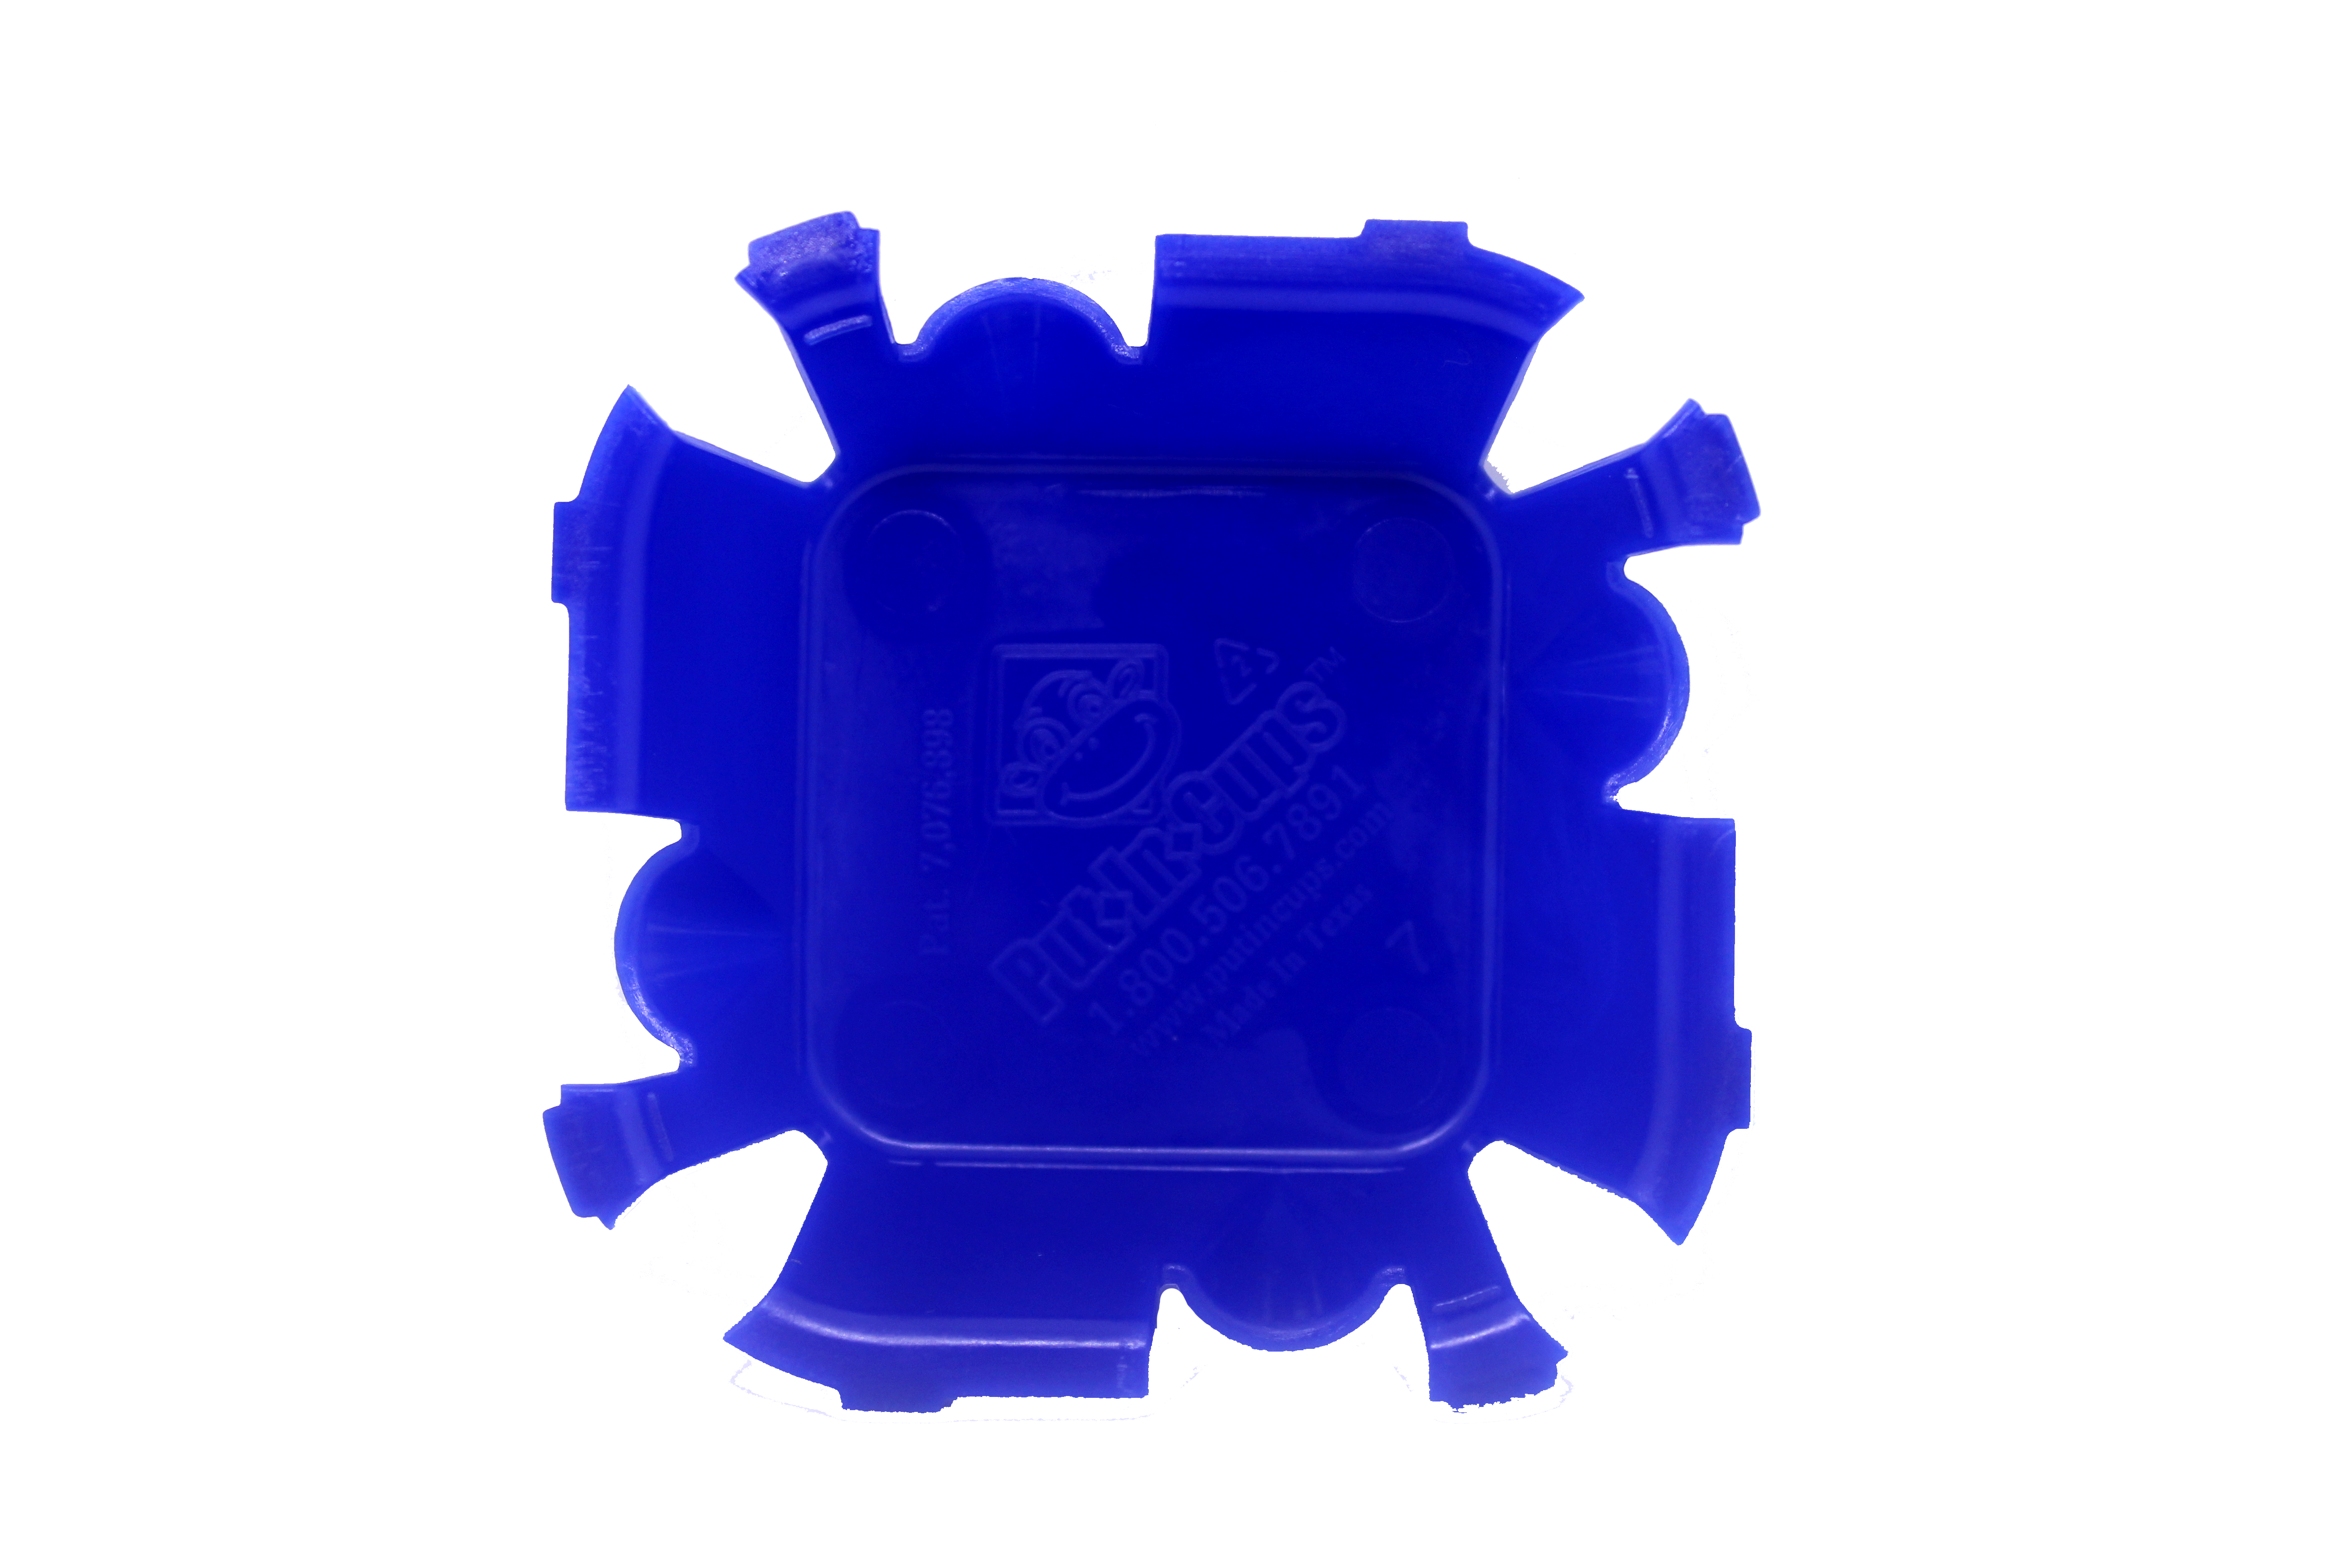 Royal Blue Sleeve (50 Cups per Sleeve)